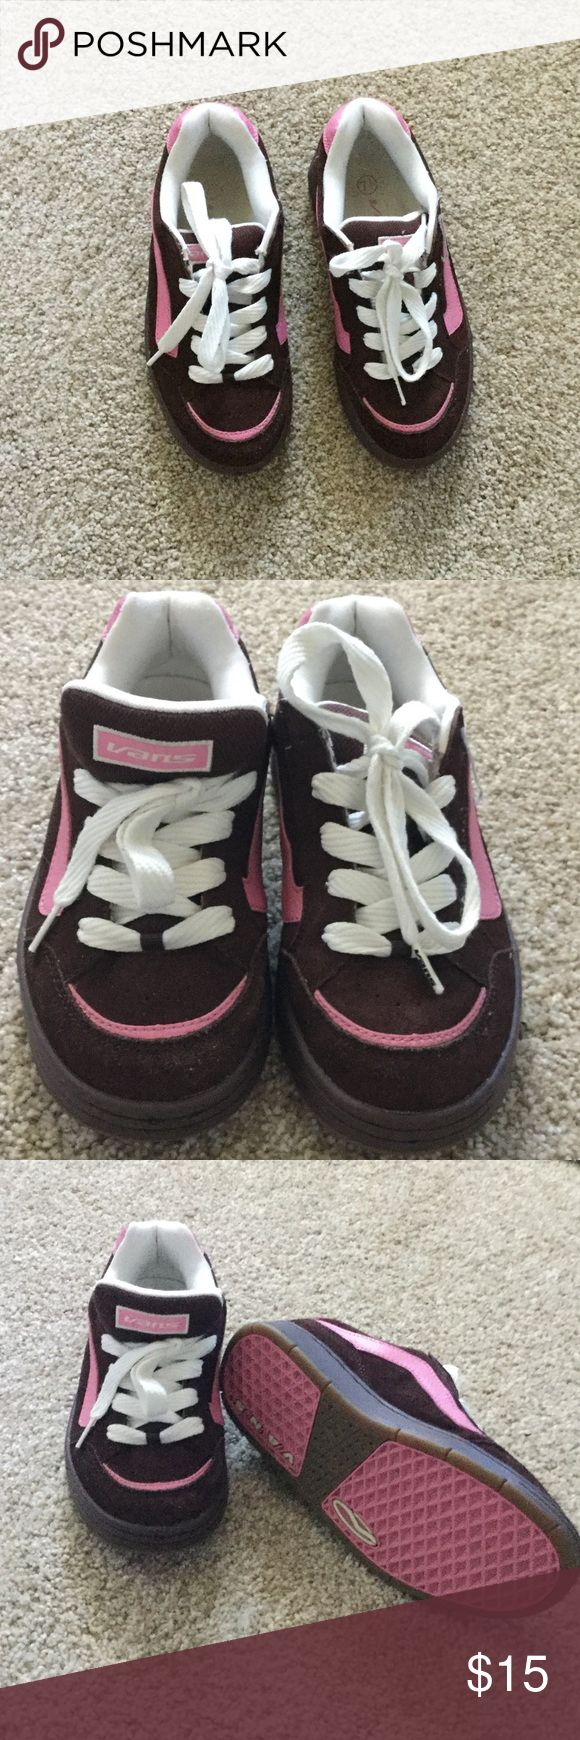 Vans shoes Super cute pink and brown Vans, they are a 7 1/2 but fit more like a7. In perfect condition Vans Shoes Sneakers